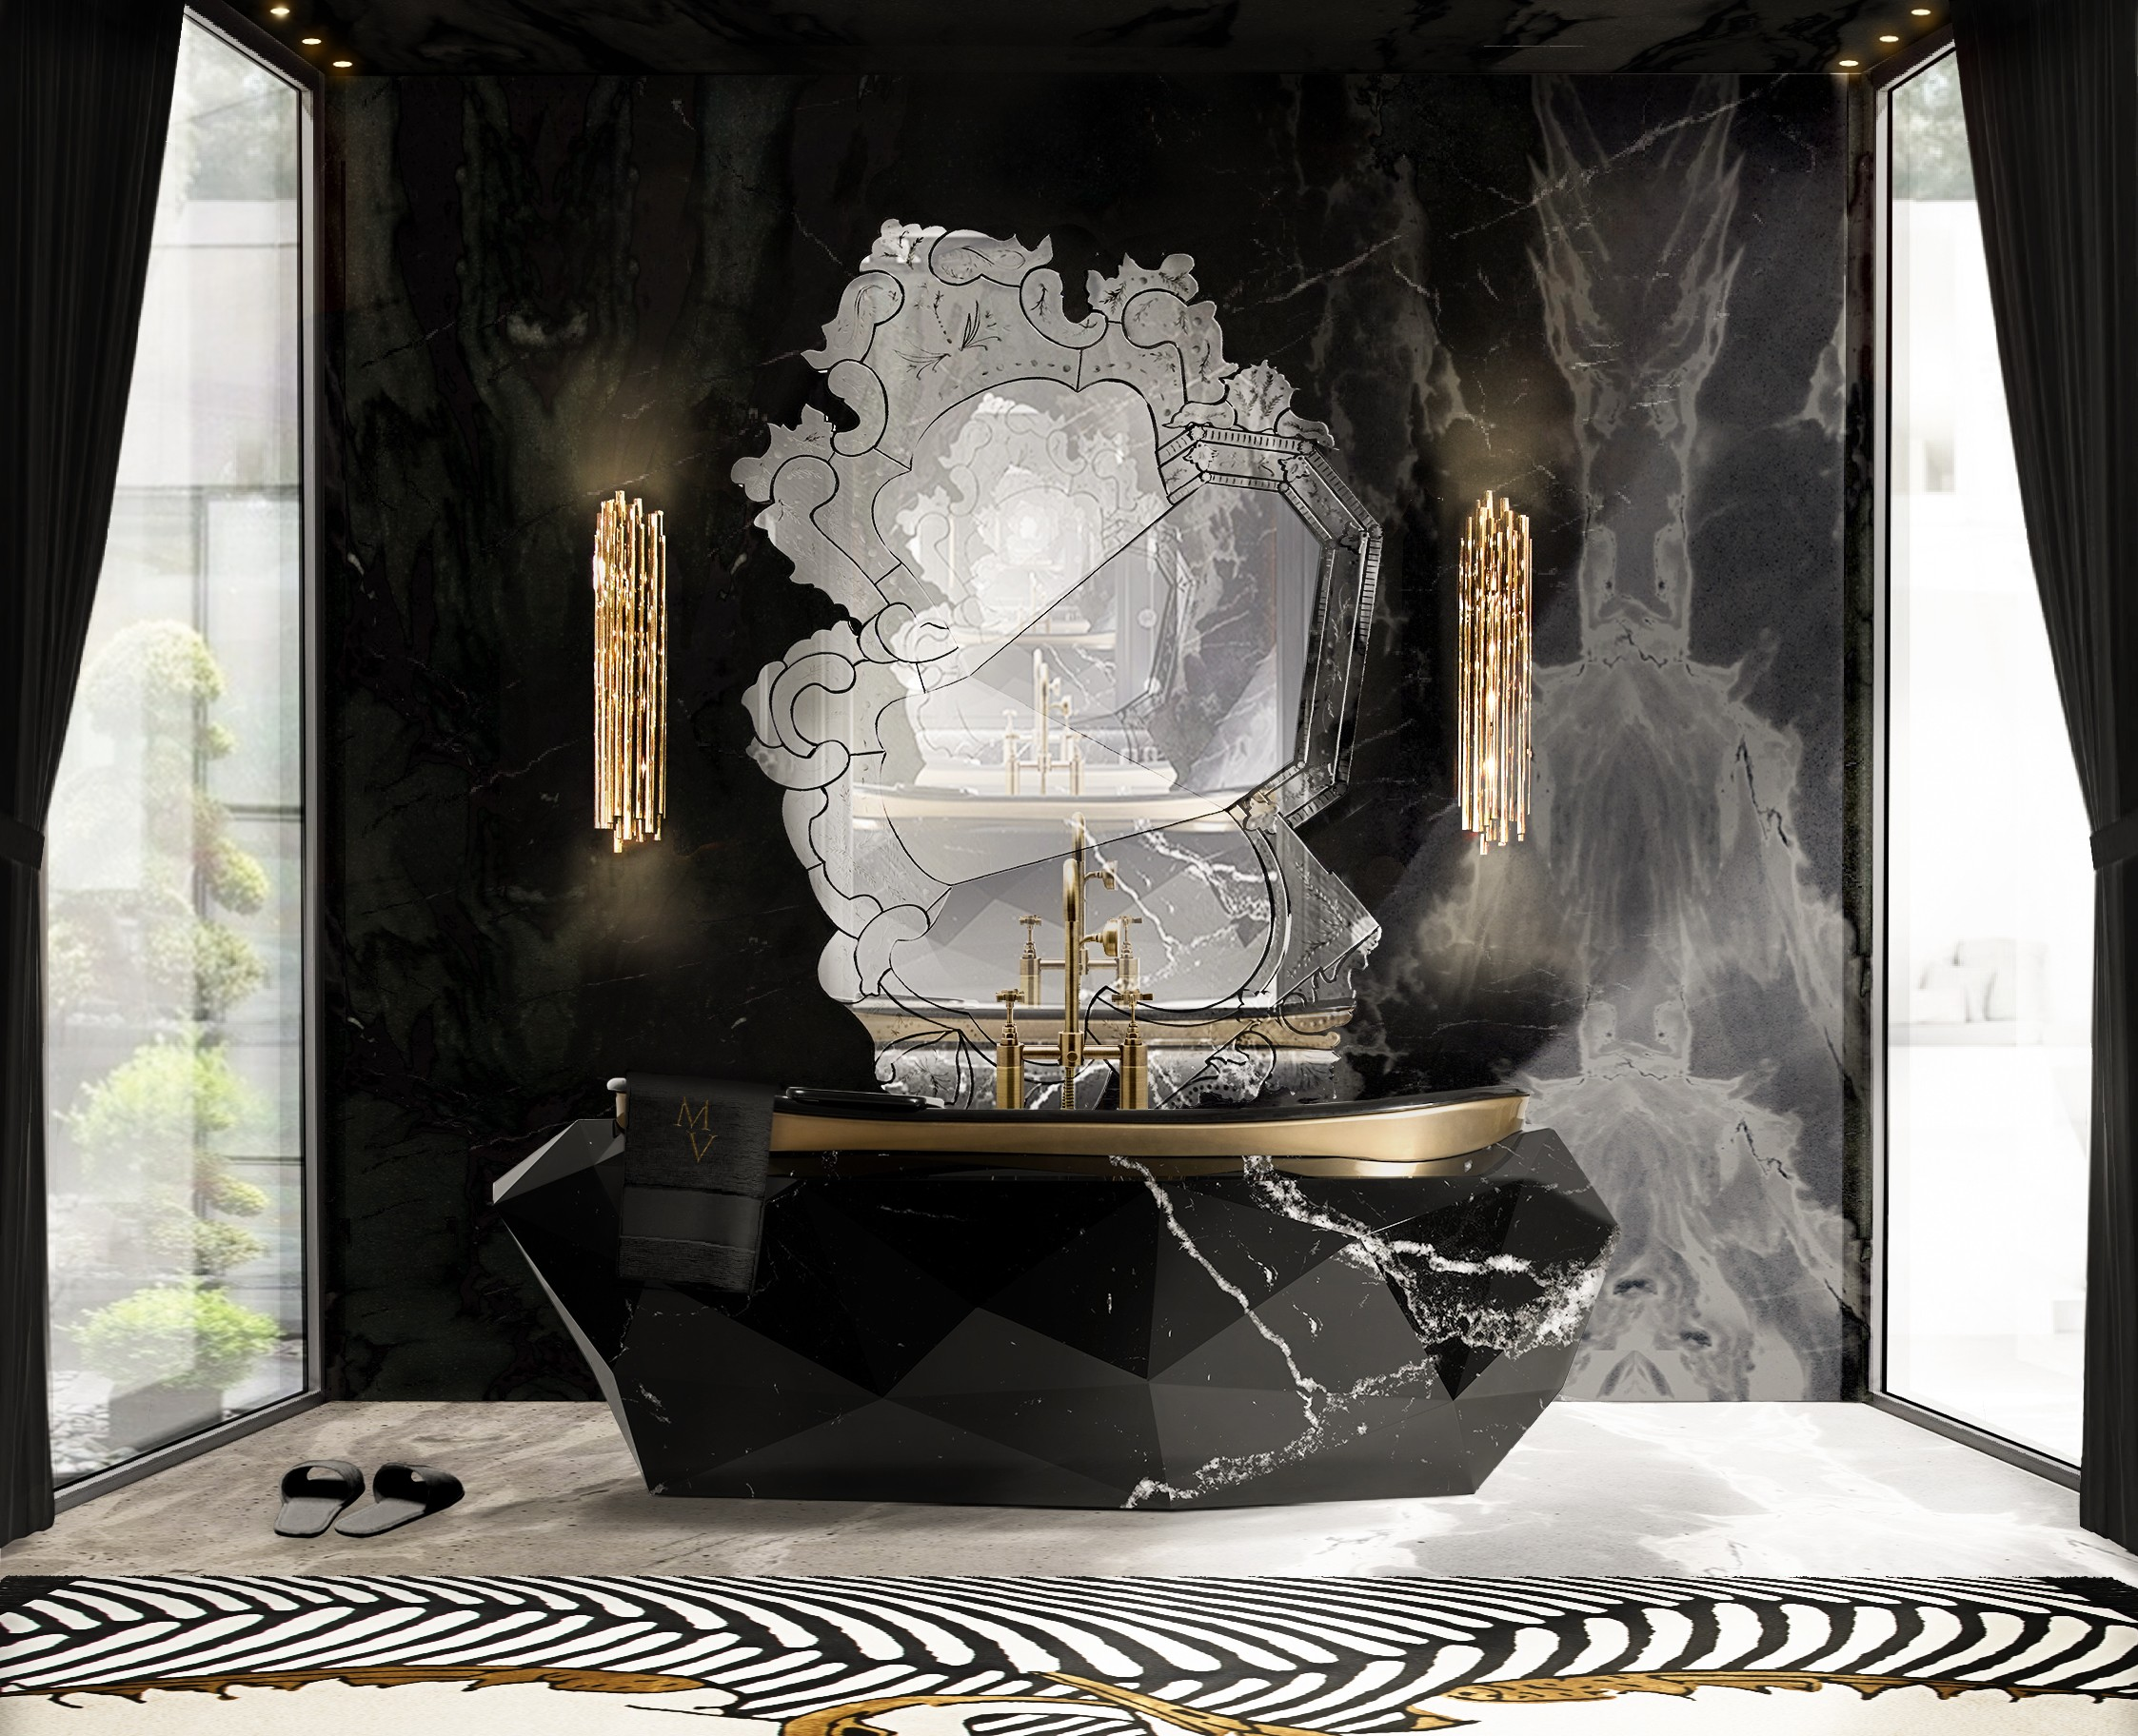 September Edition: Luxury Must-Haves Of The Month September Edition September Edition: Luxury Must-Haves Of The Month elegant bathroom with diamond bathtub in nero marquina faux marble